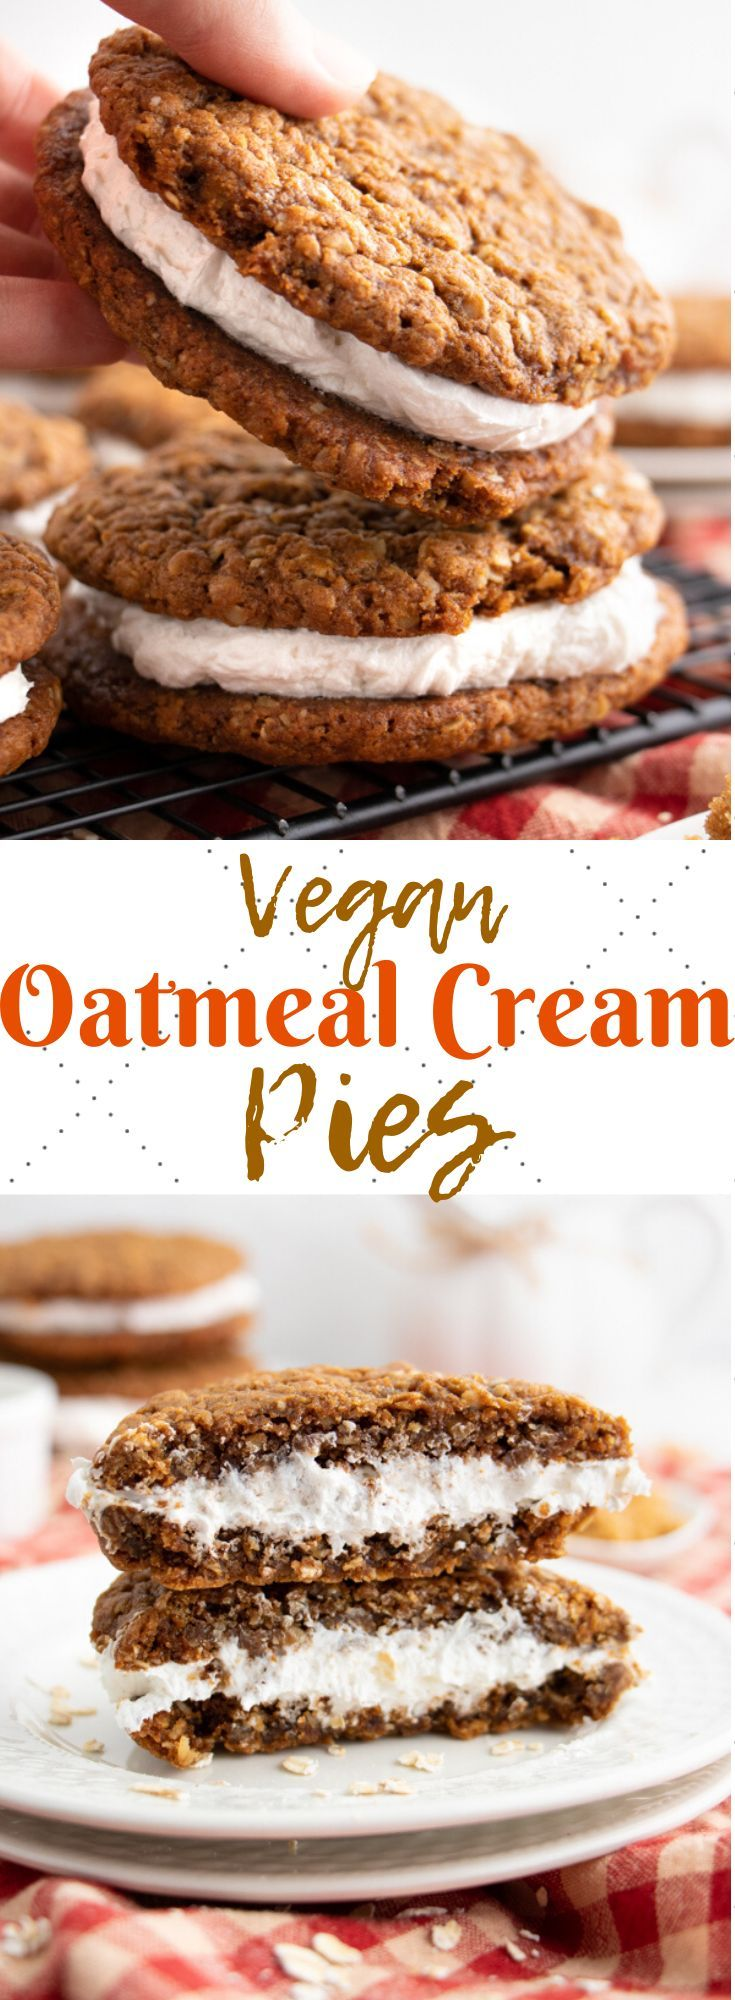 The Yummiest Vegan Oatmeal Cream Pies #sweetpie